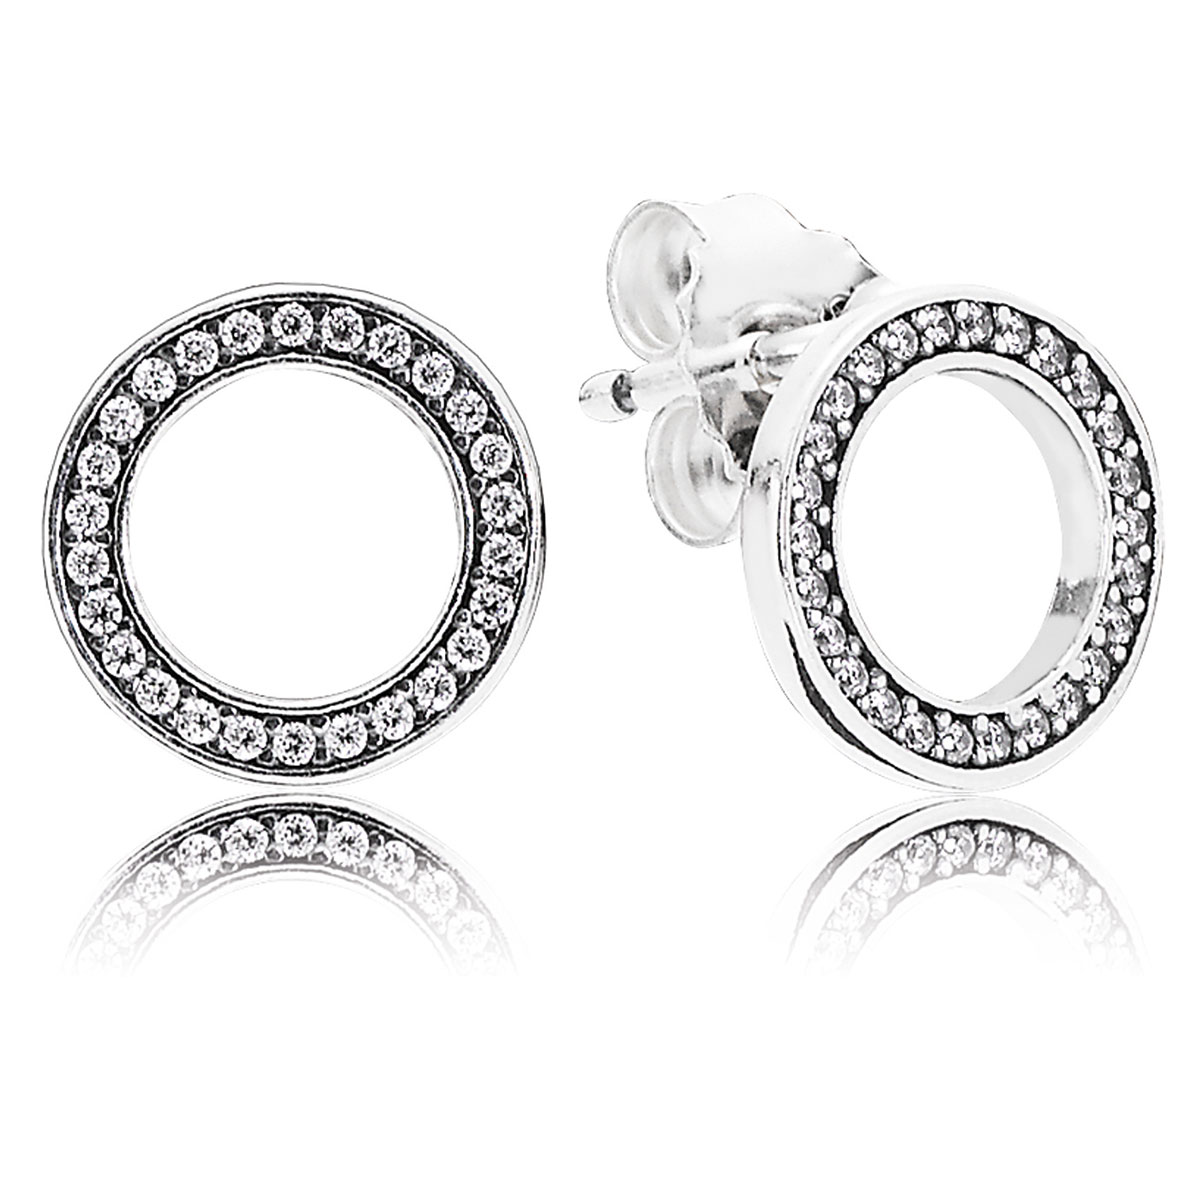 804-421-PANDORA Forever PANDORA with Clear CZ Stud Earrings